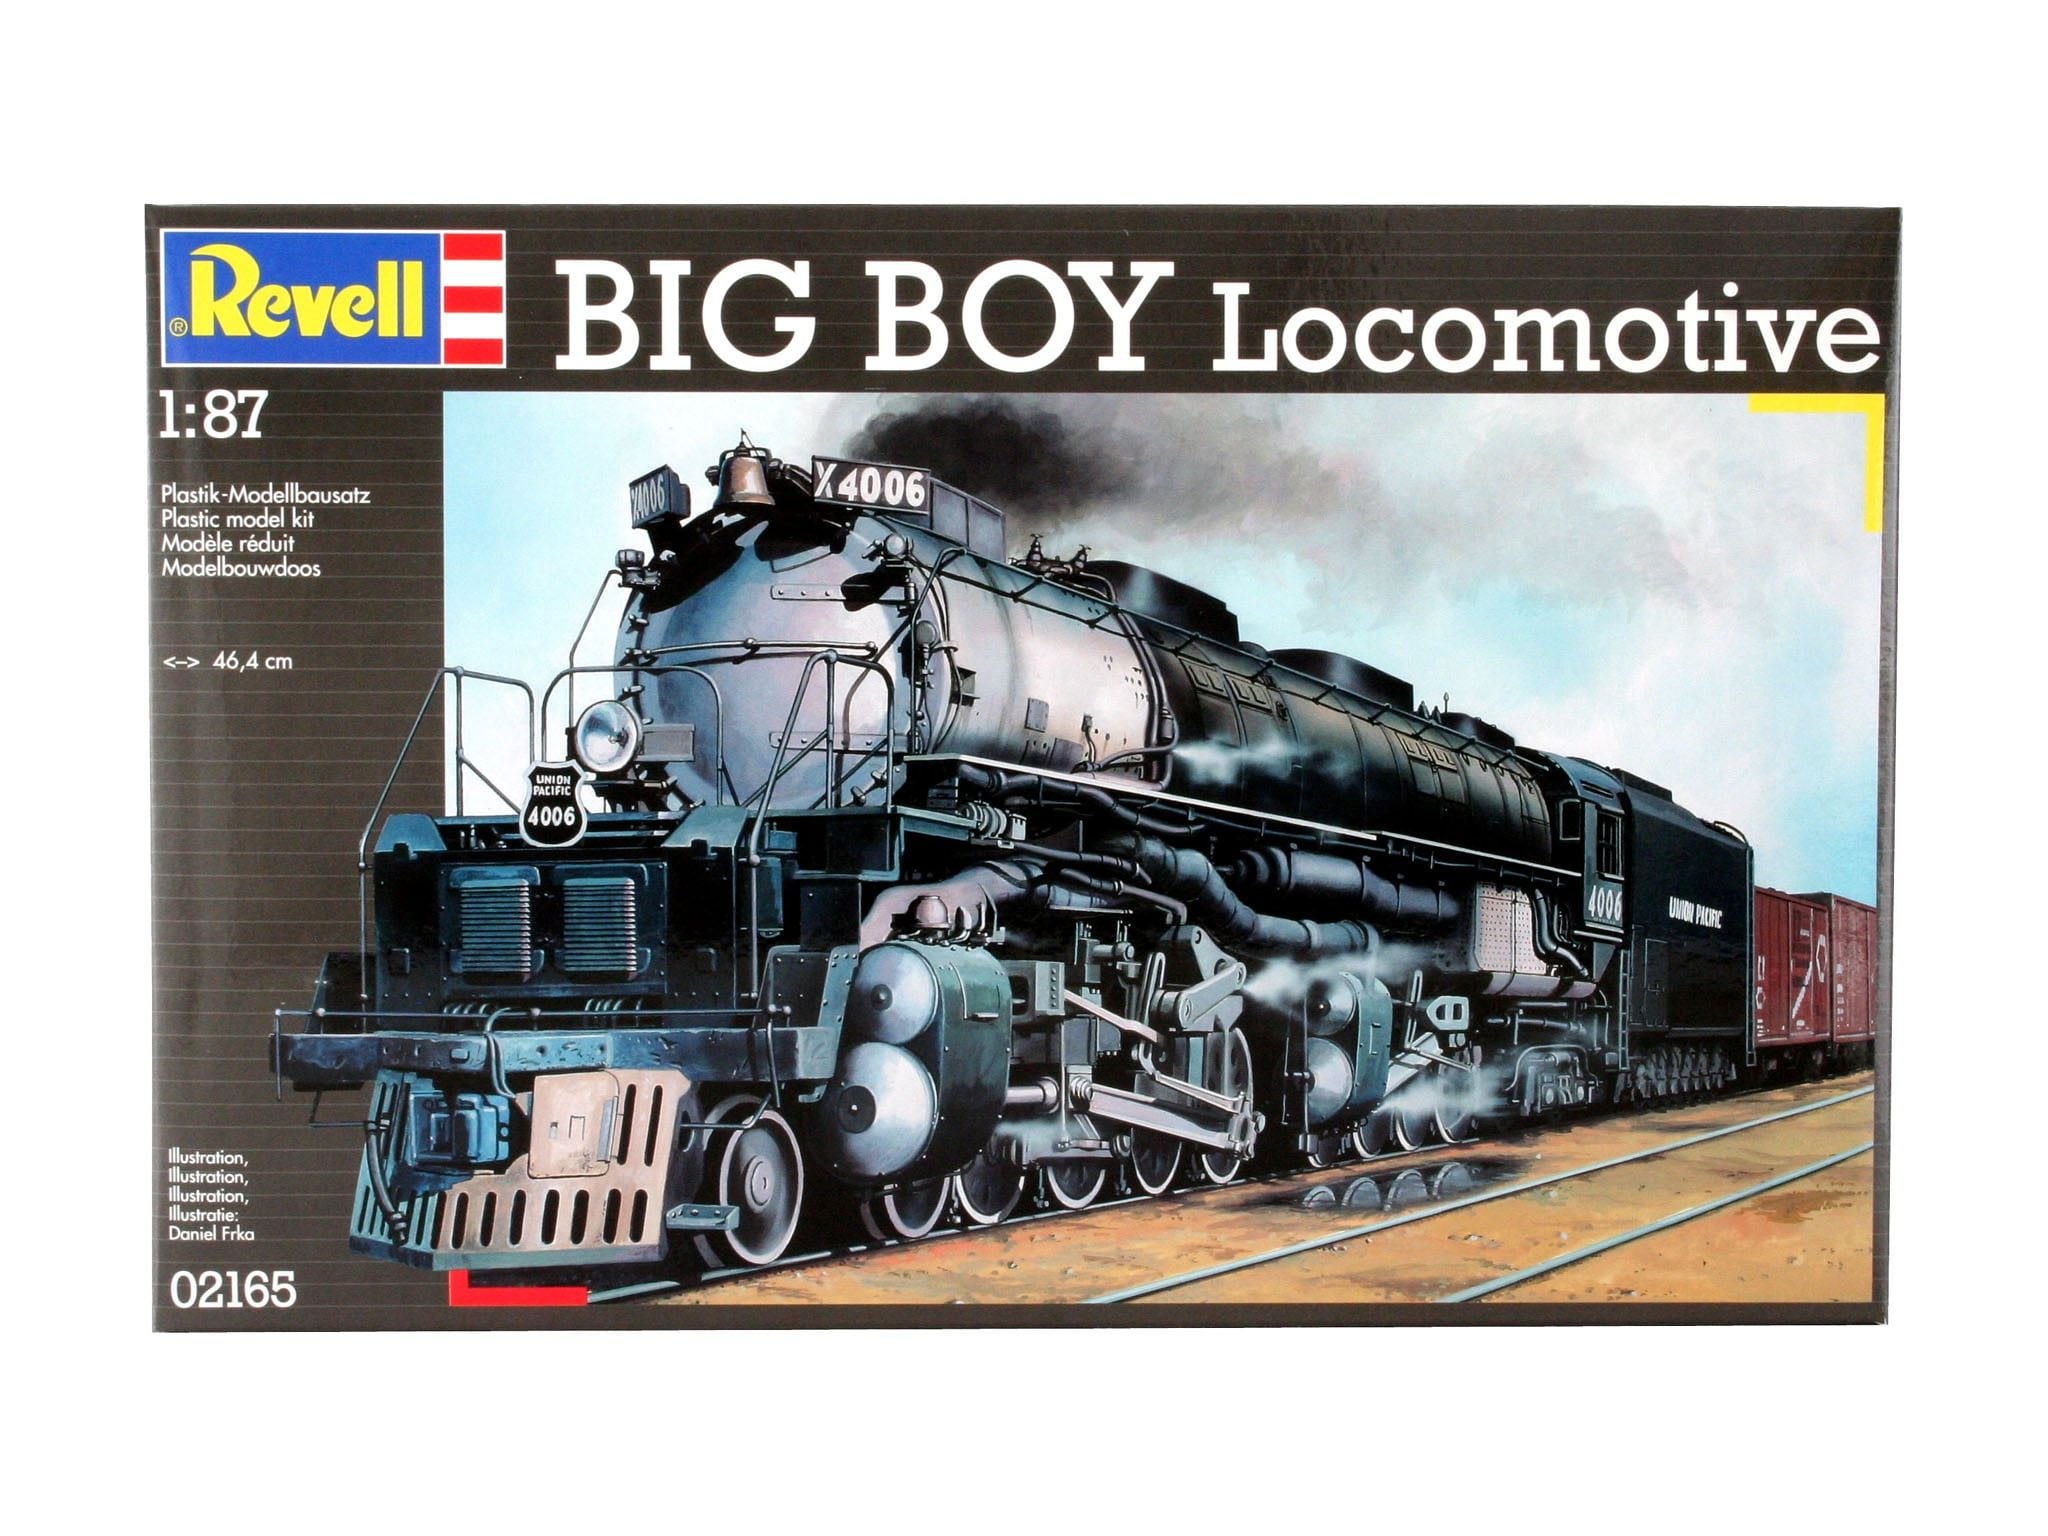 Revell Big Boy Locomotive Plastic Model Kit